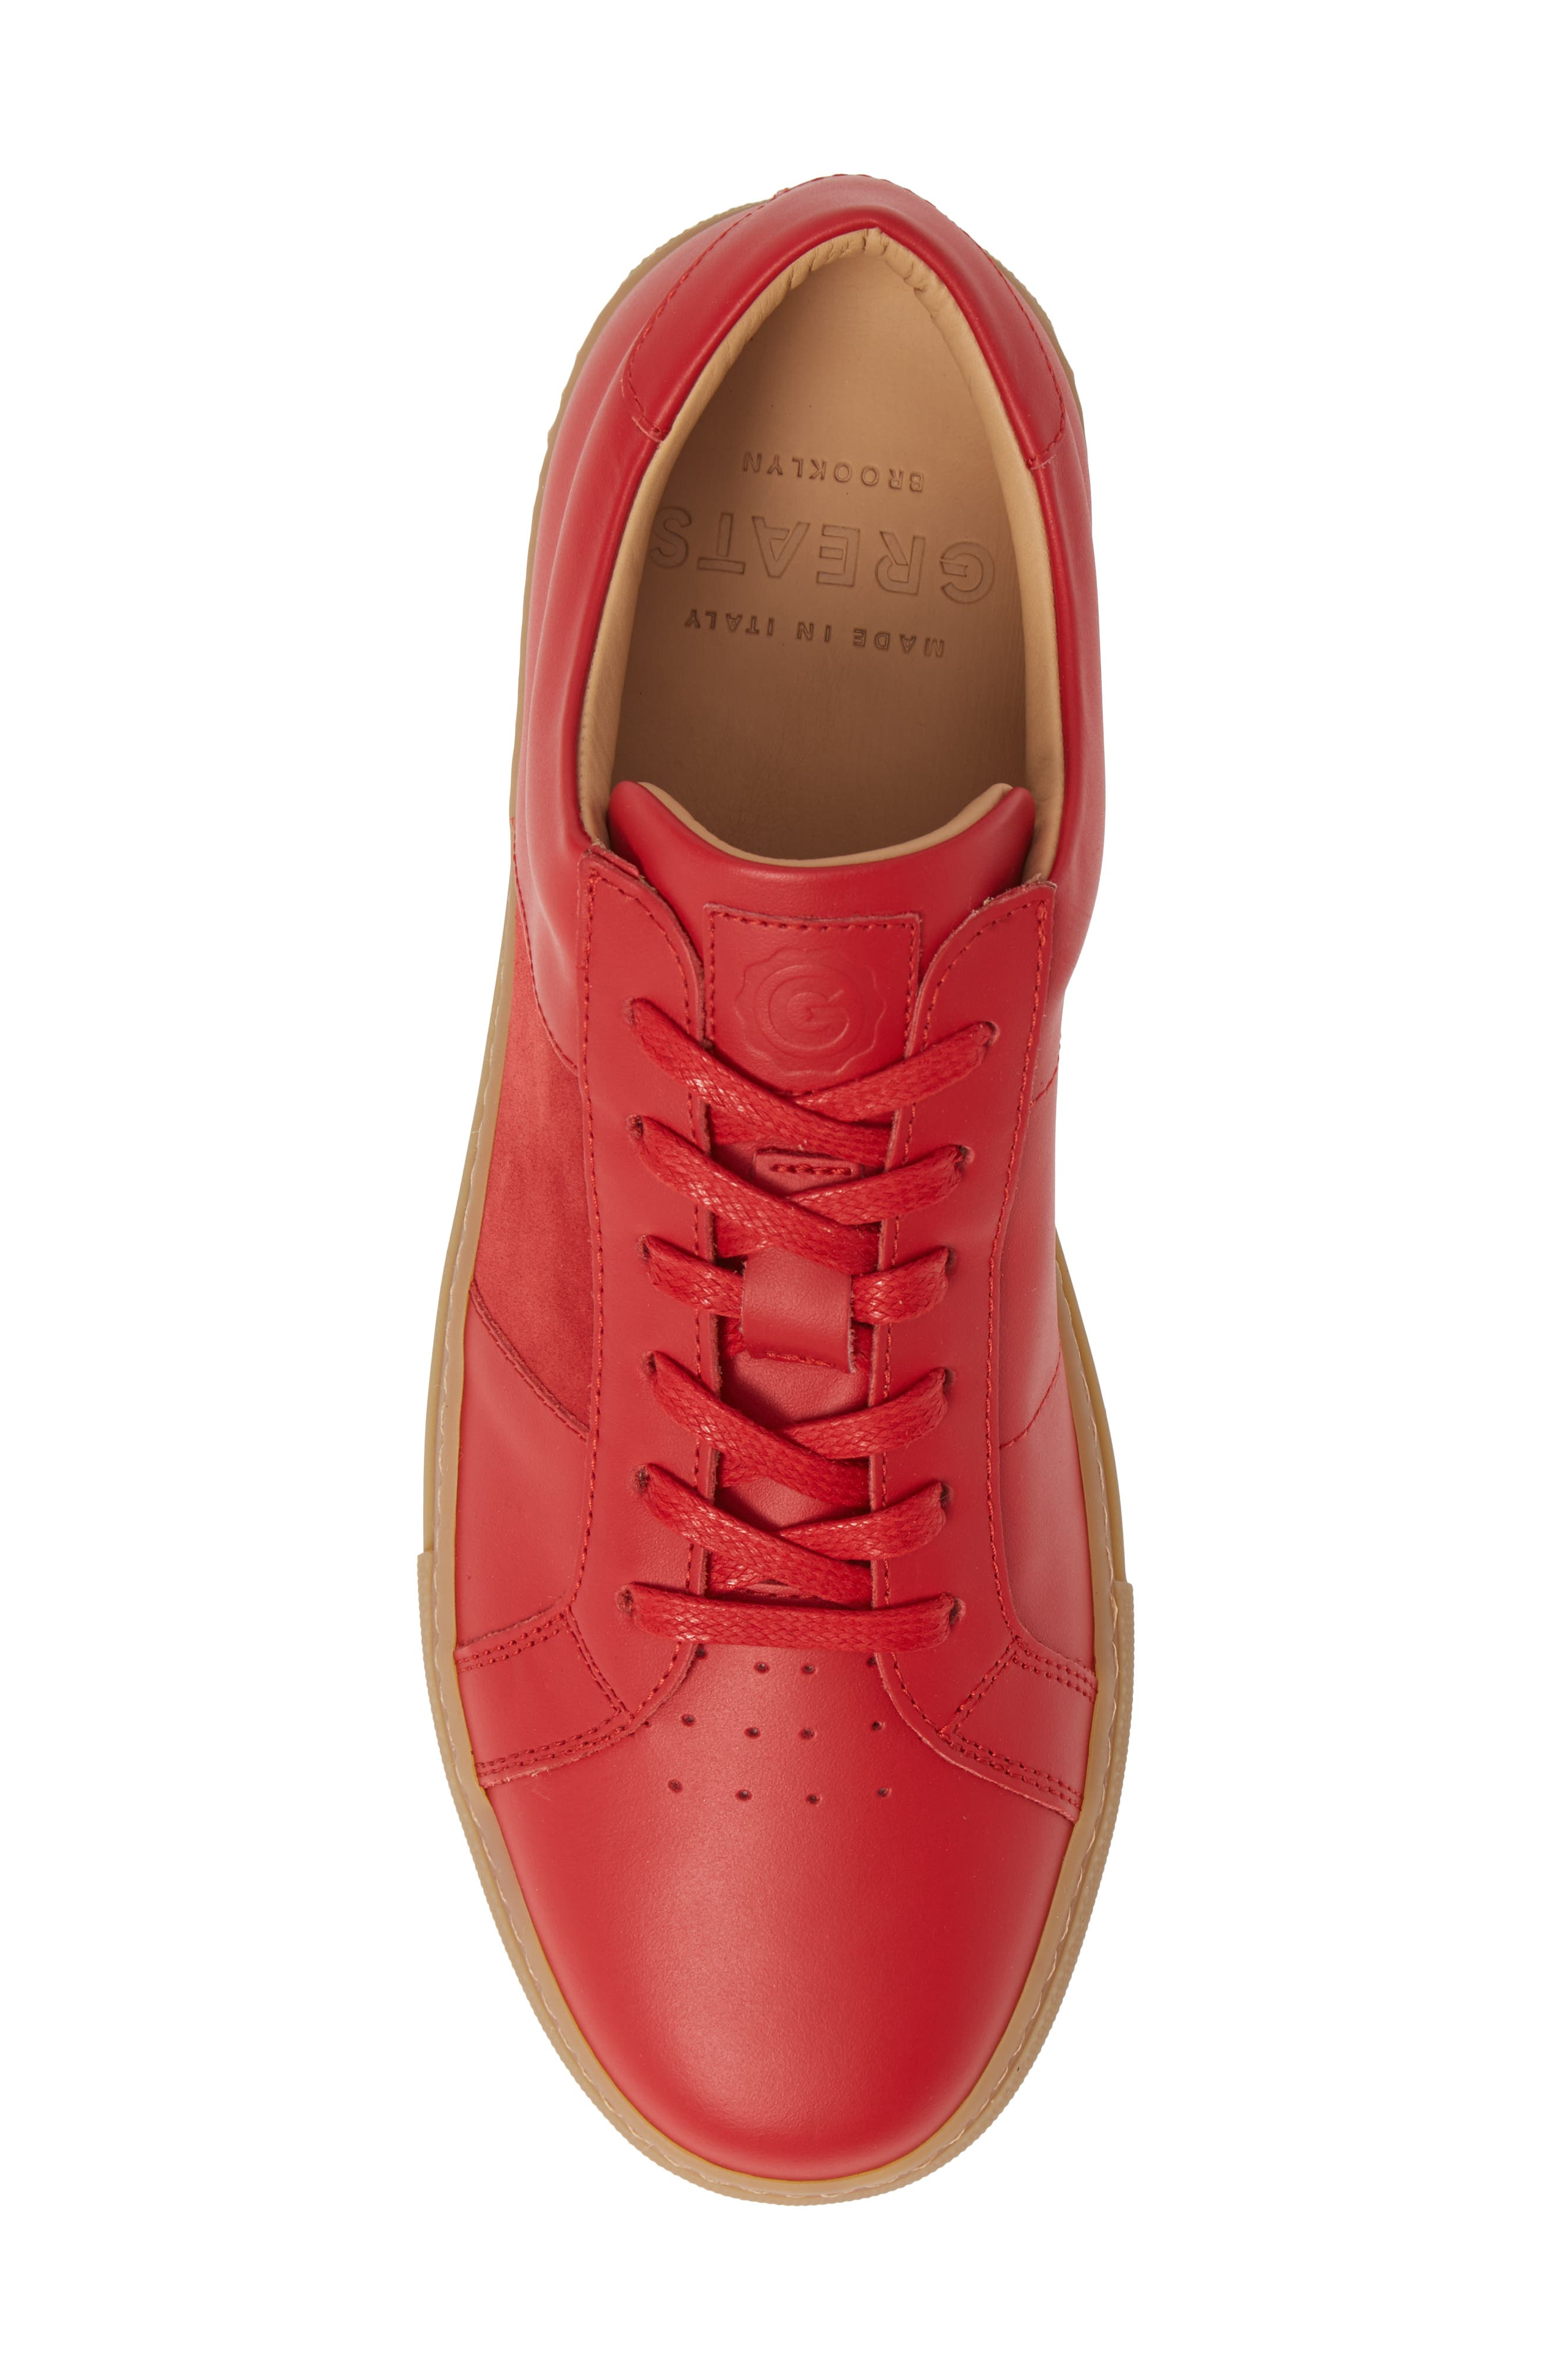 Royale Sneaker,                             Alternate thumbnail 5, color,                             RED/ GUM LEATHER